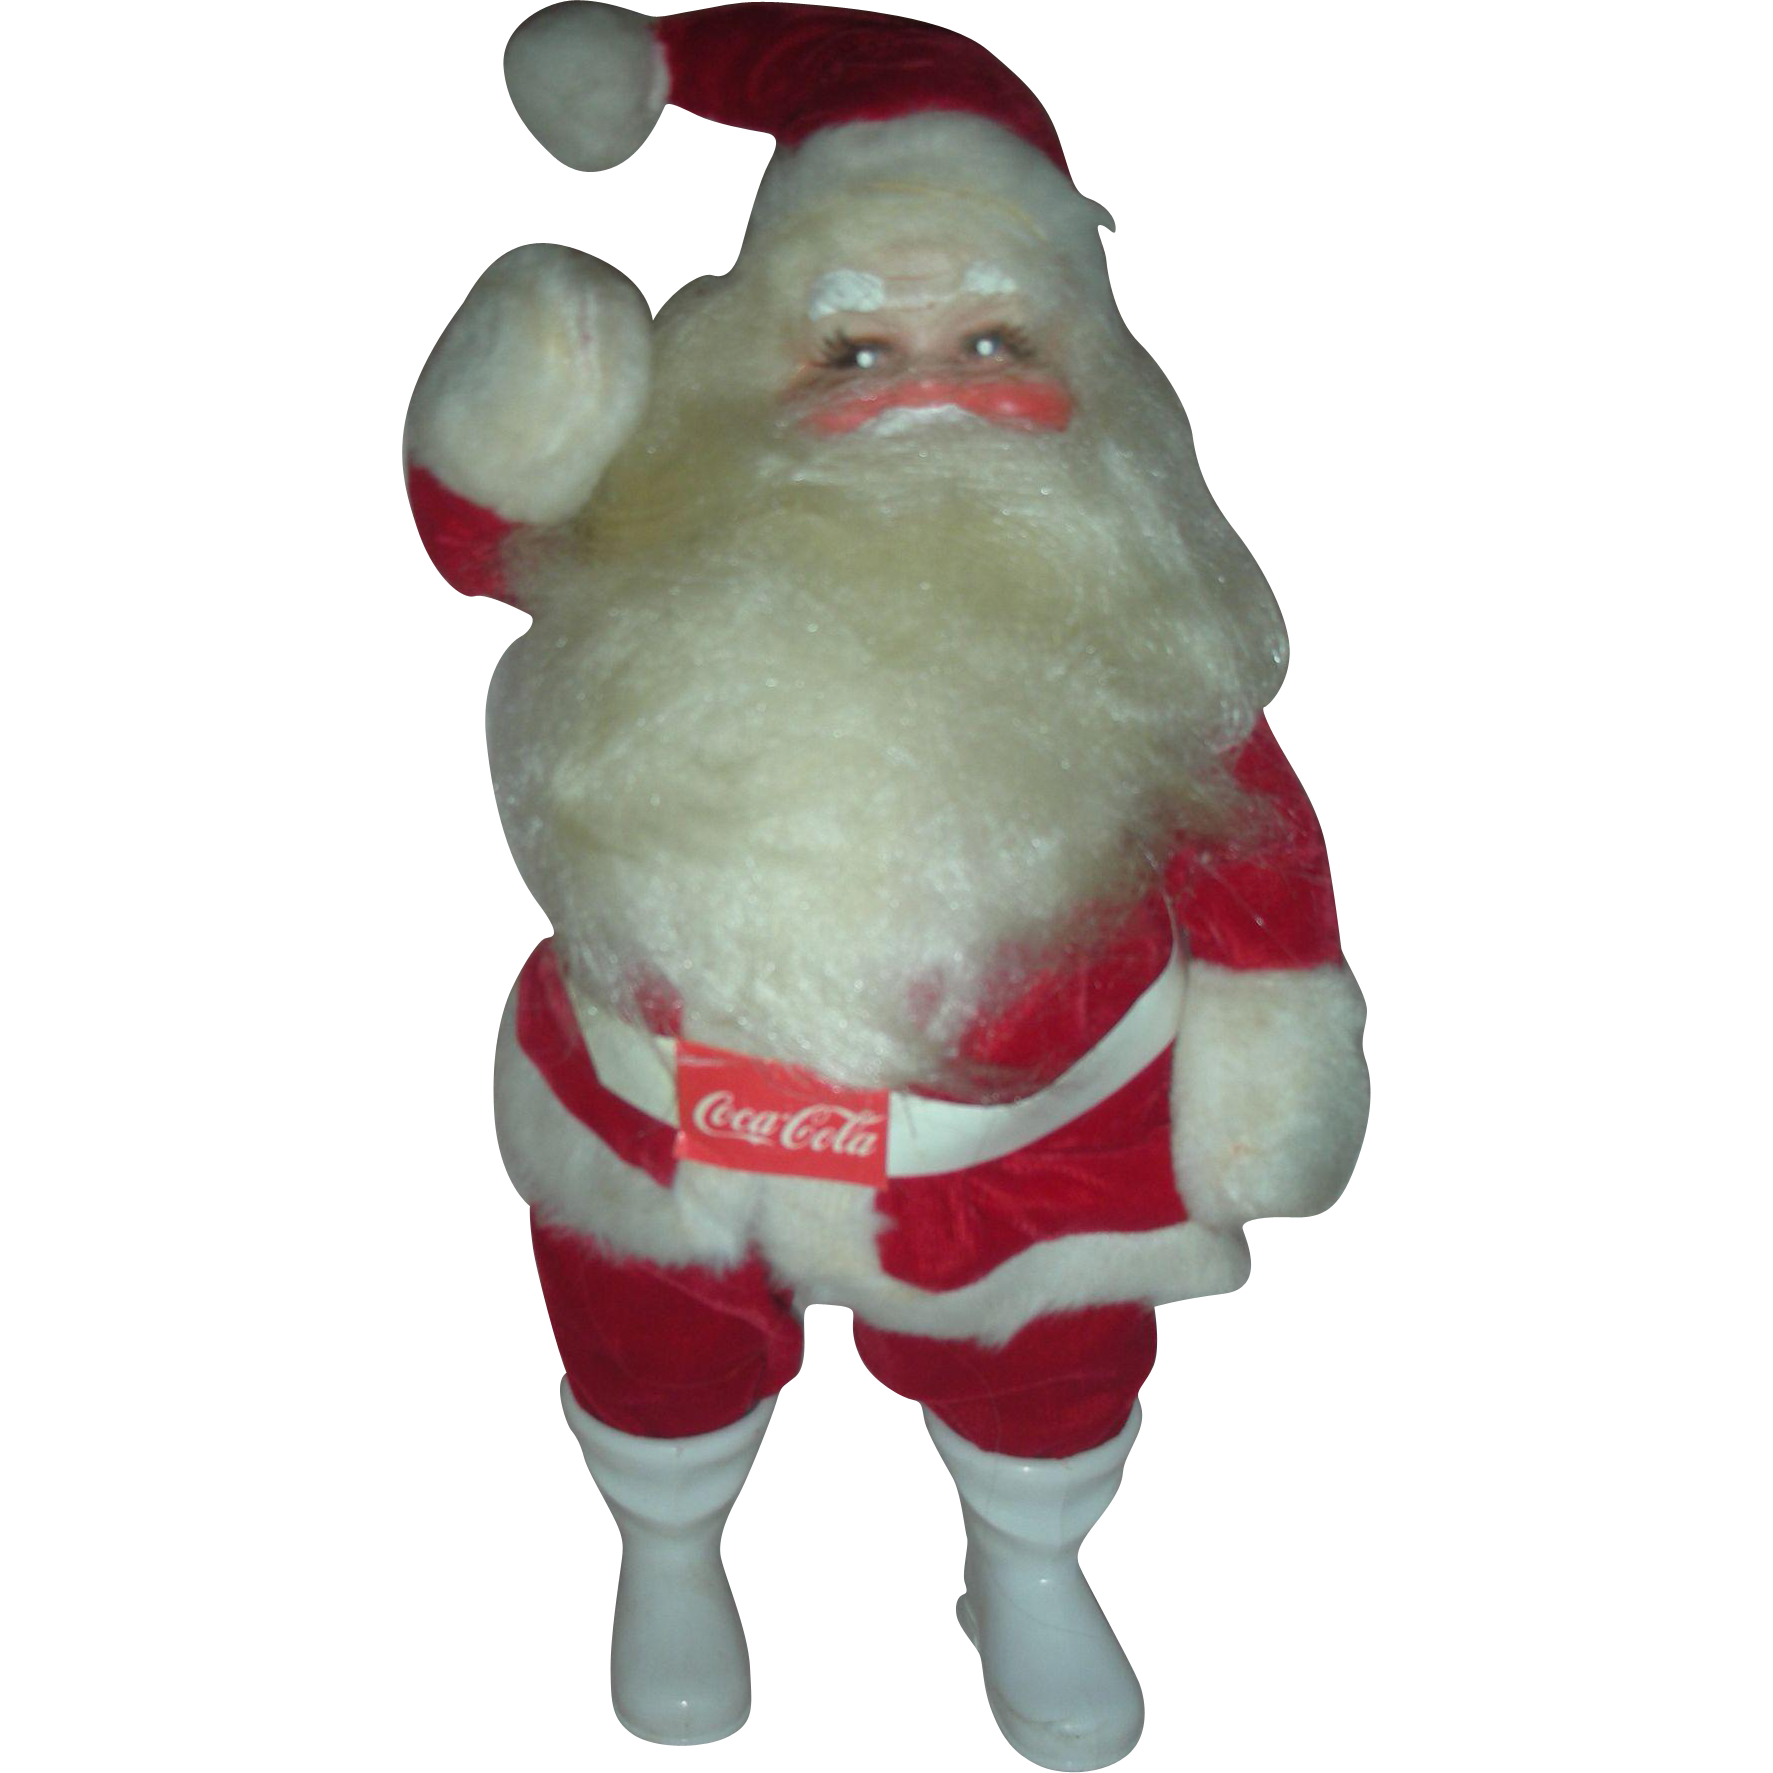 Vintage Harold Gayle Santa Claus Coca Cola Christmas Store Display Doll